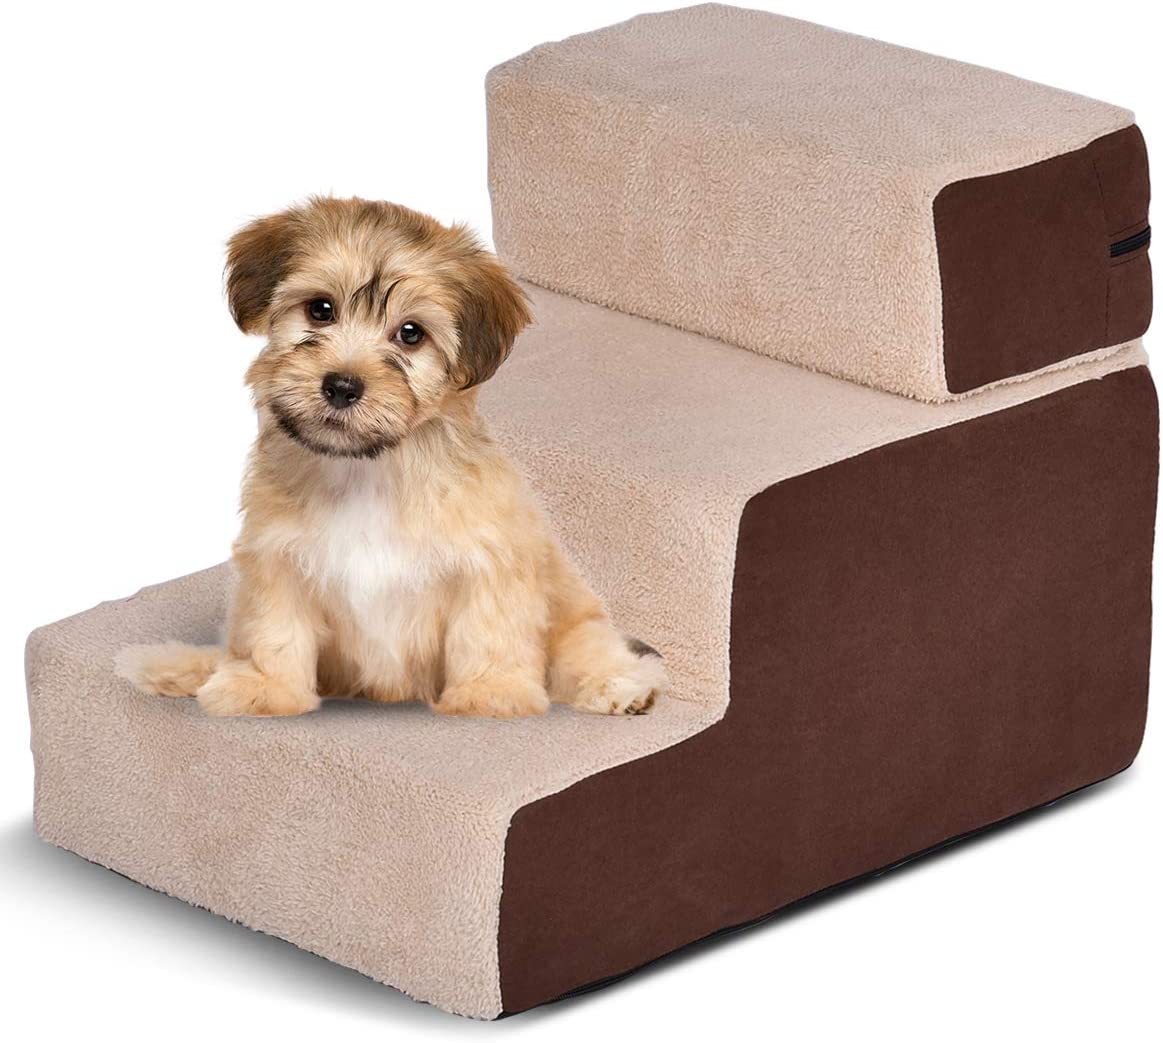 Giantex Dog Steps 3-Step Soft Dog Stairs Ramp Portable Cotton Pet Steps Home Stairs, Best for Dogs and Cats, Brown